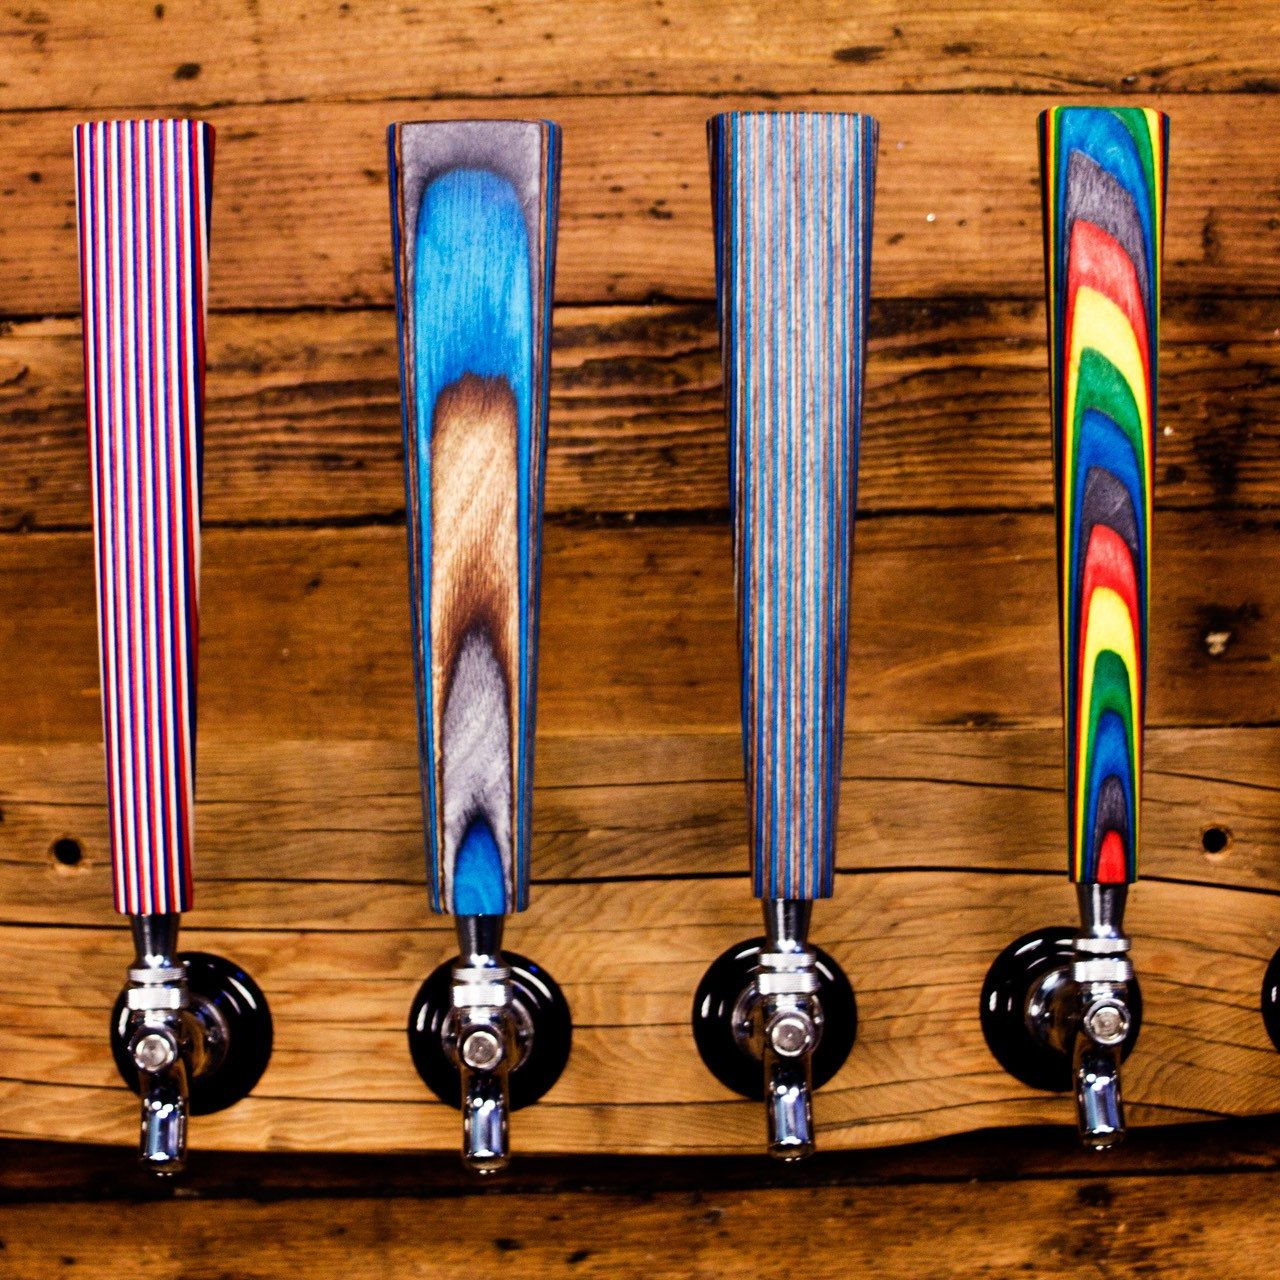 Beardedboydesign shared a new photo on beer taps wood